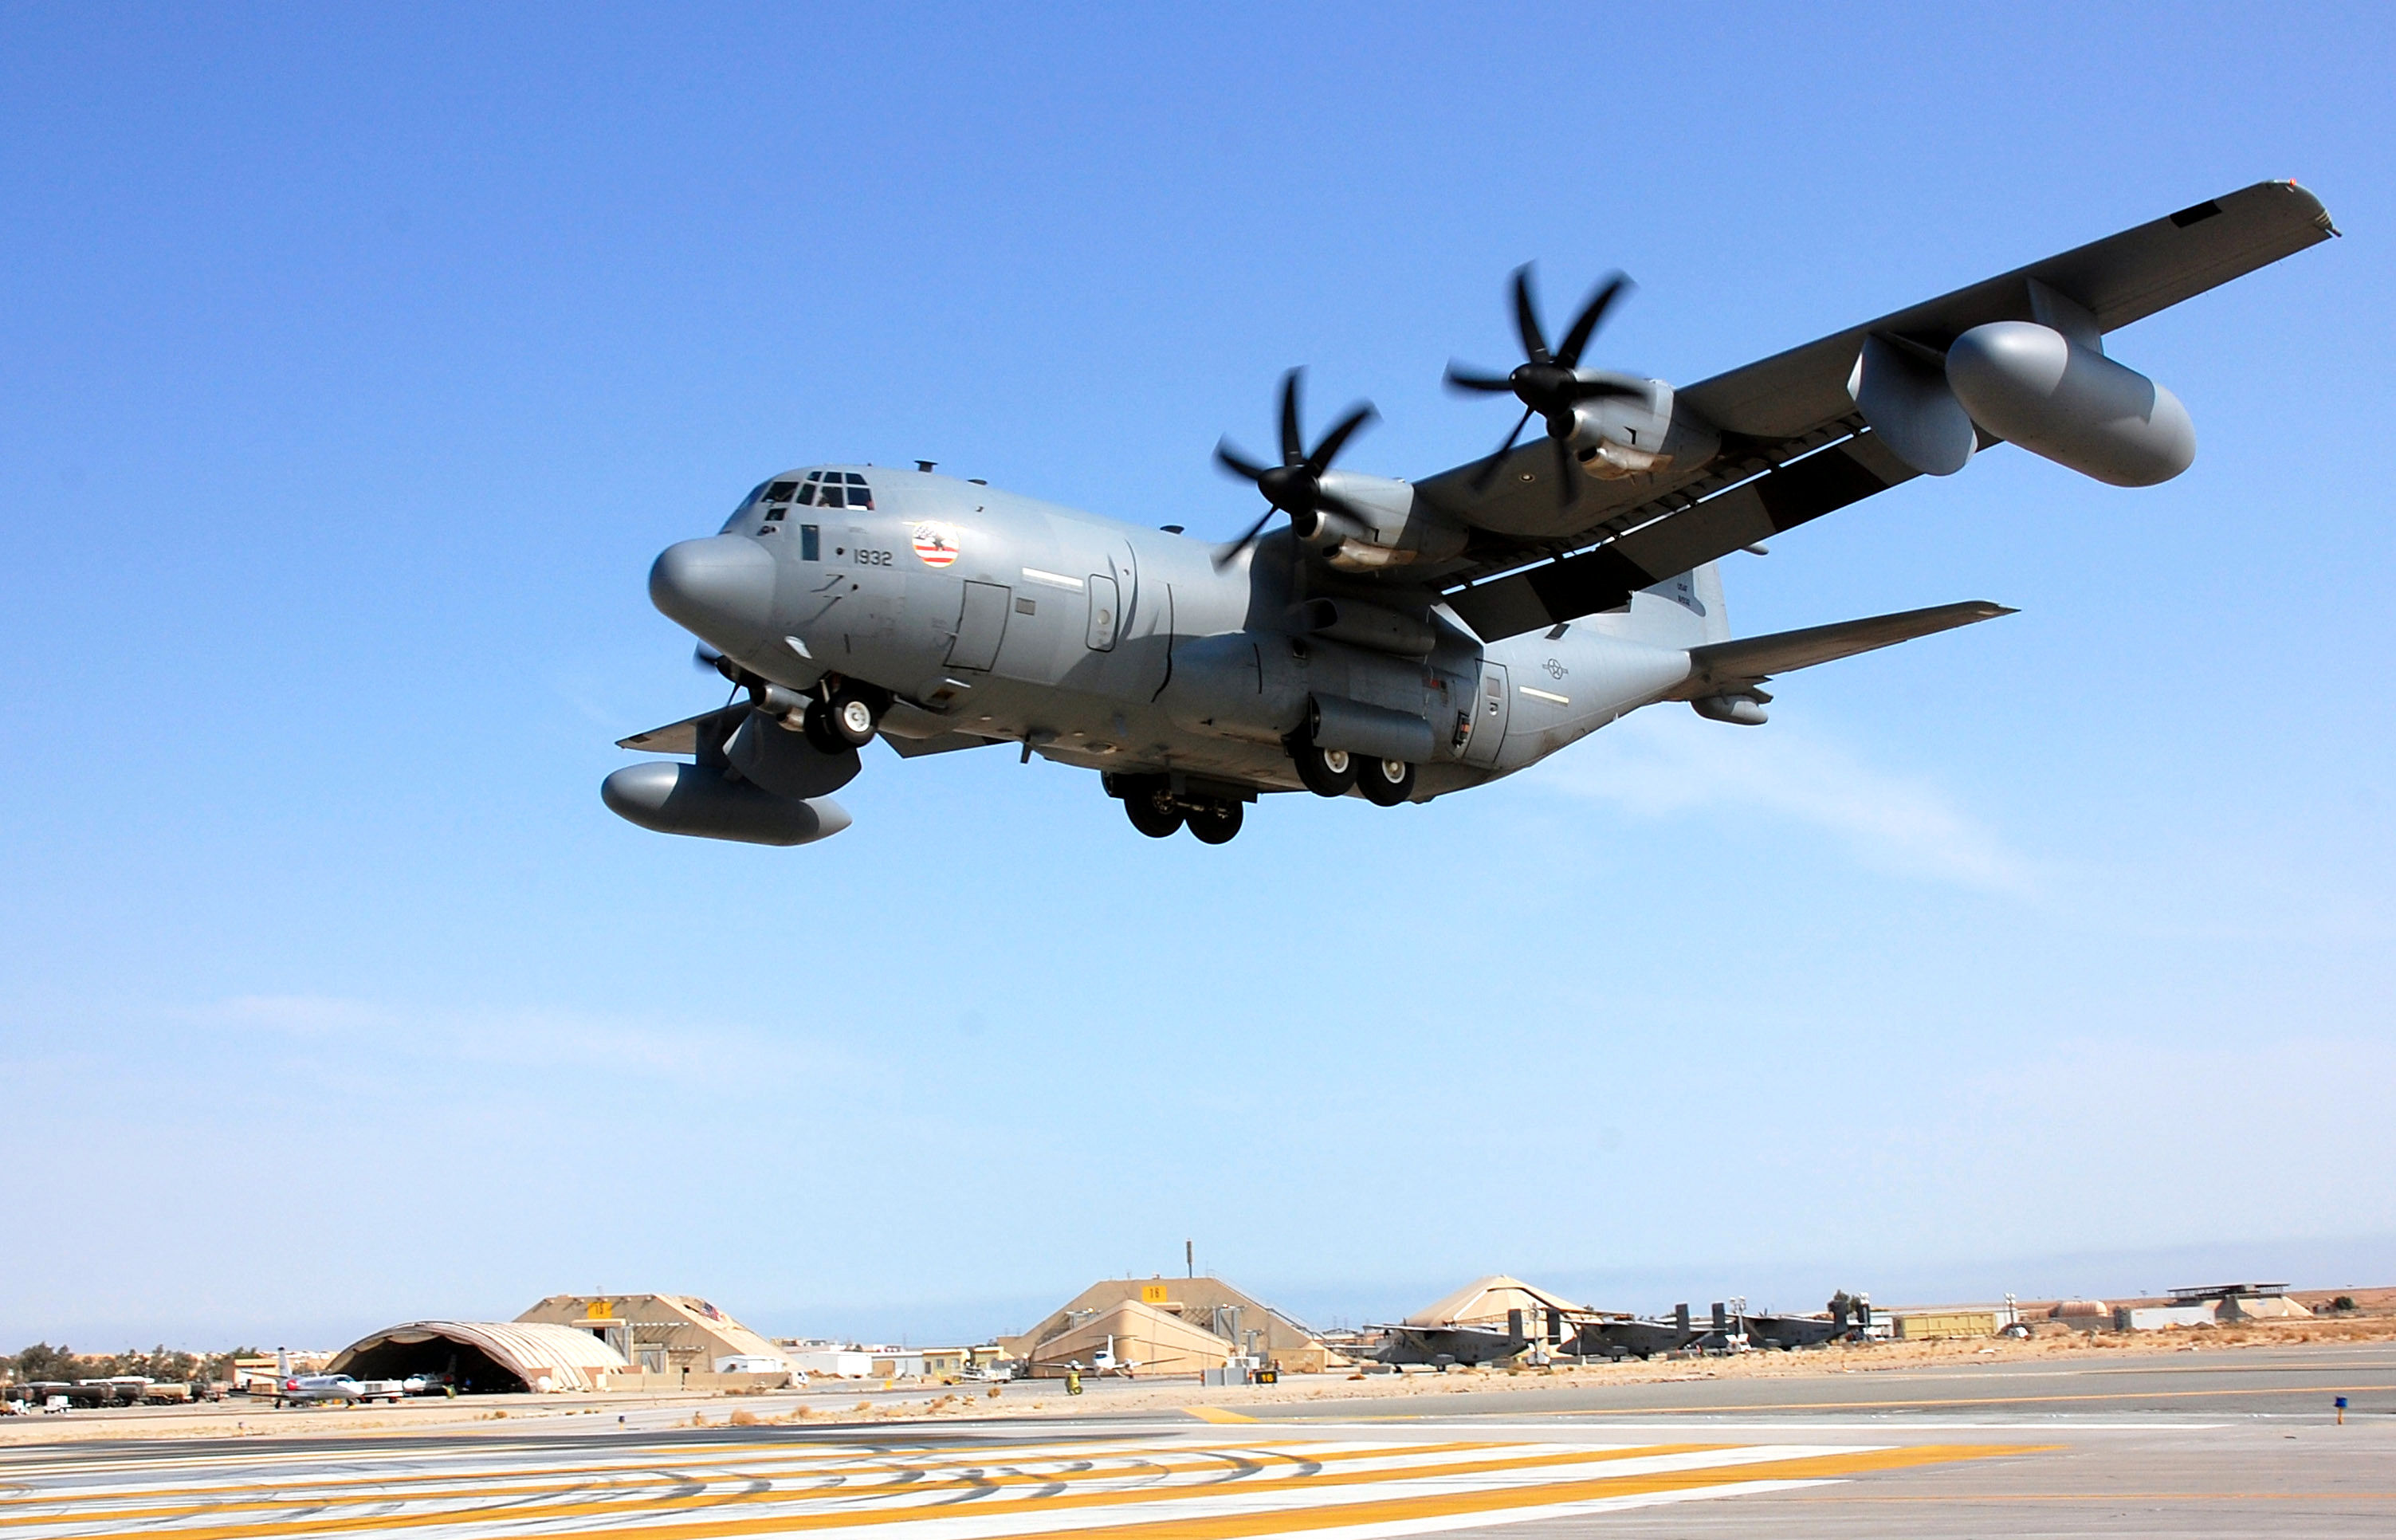 193d_Special_Operations_Squadron_EC-130J_in_SW_Asia.jpg